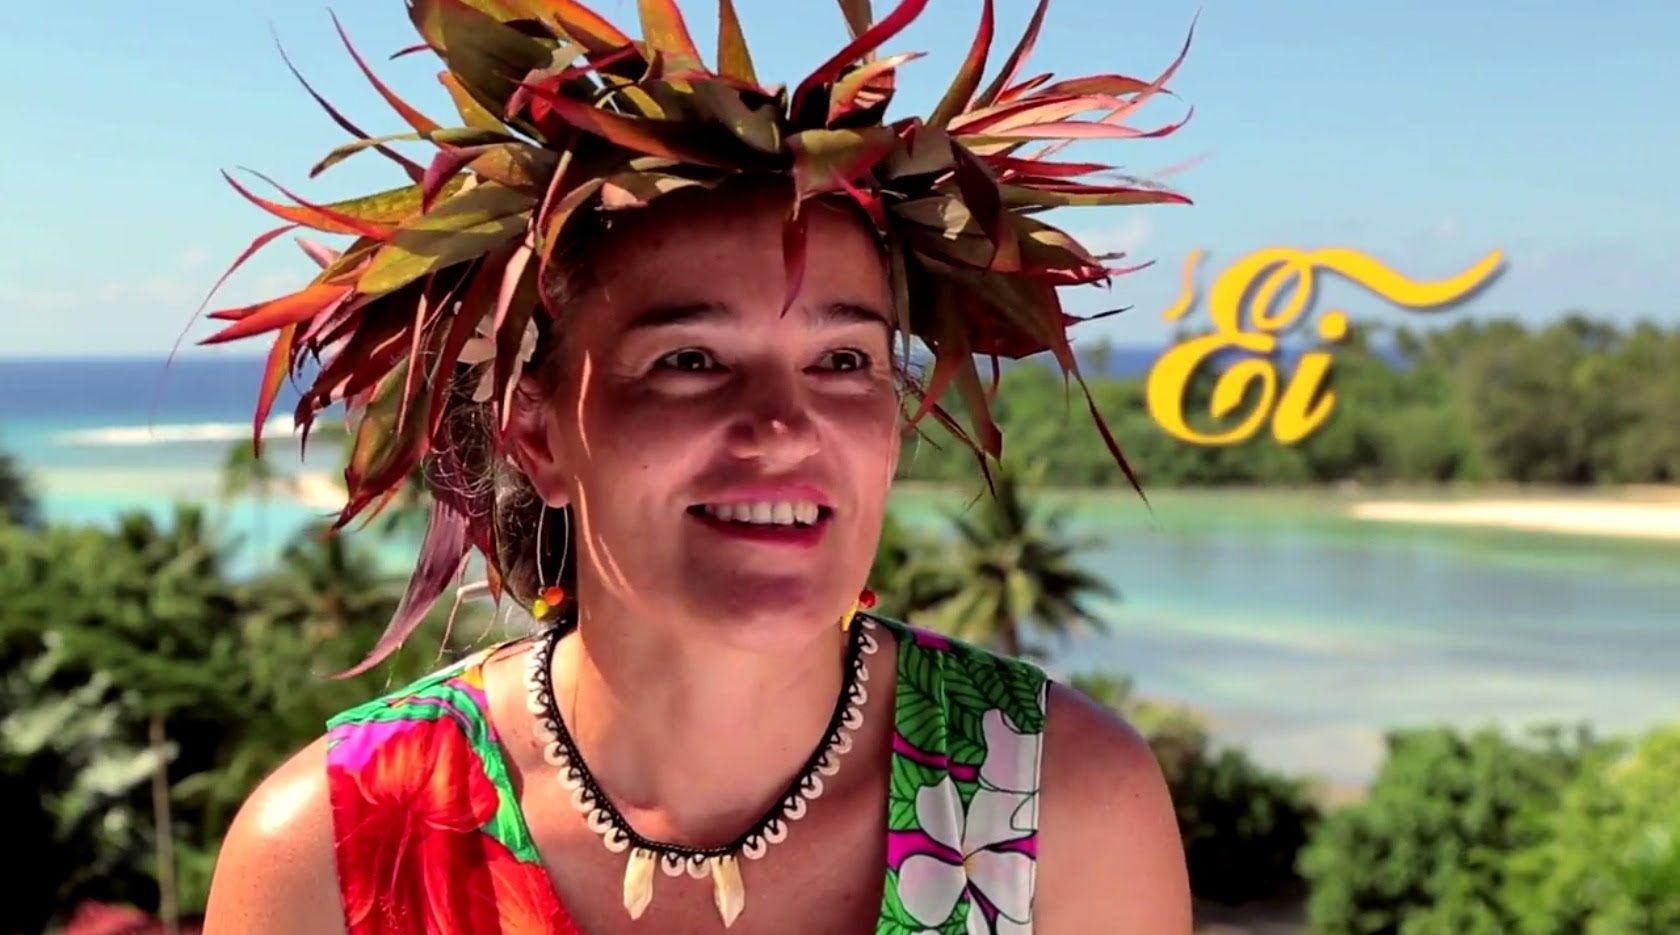 How To Make A Cook Island Ei Crown Of Flowers Worn By Cook